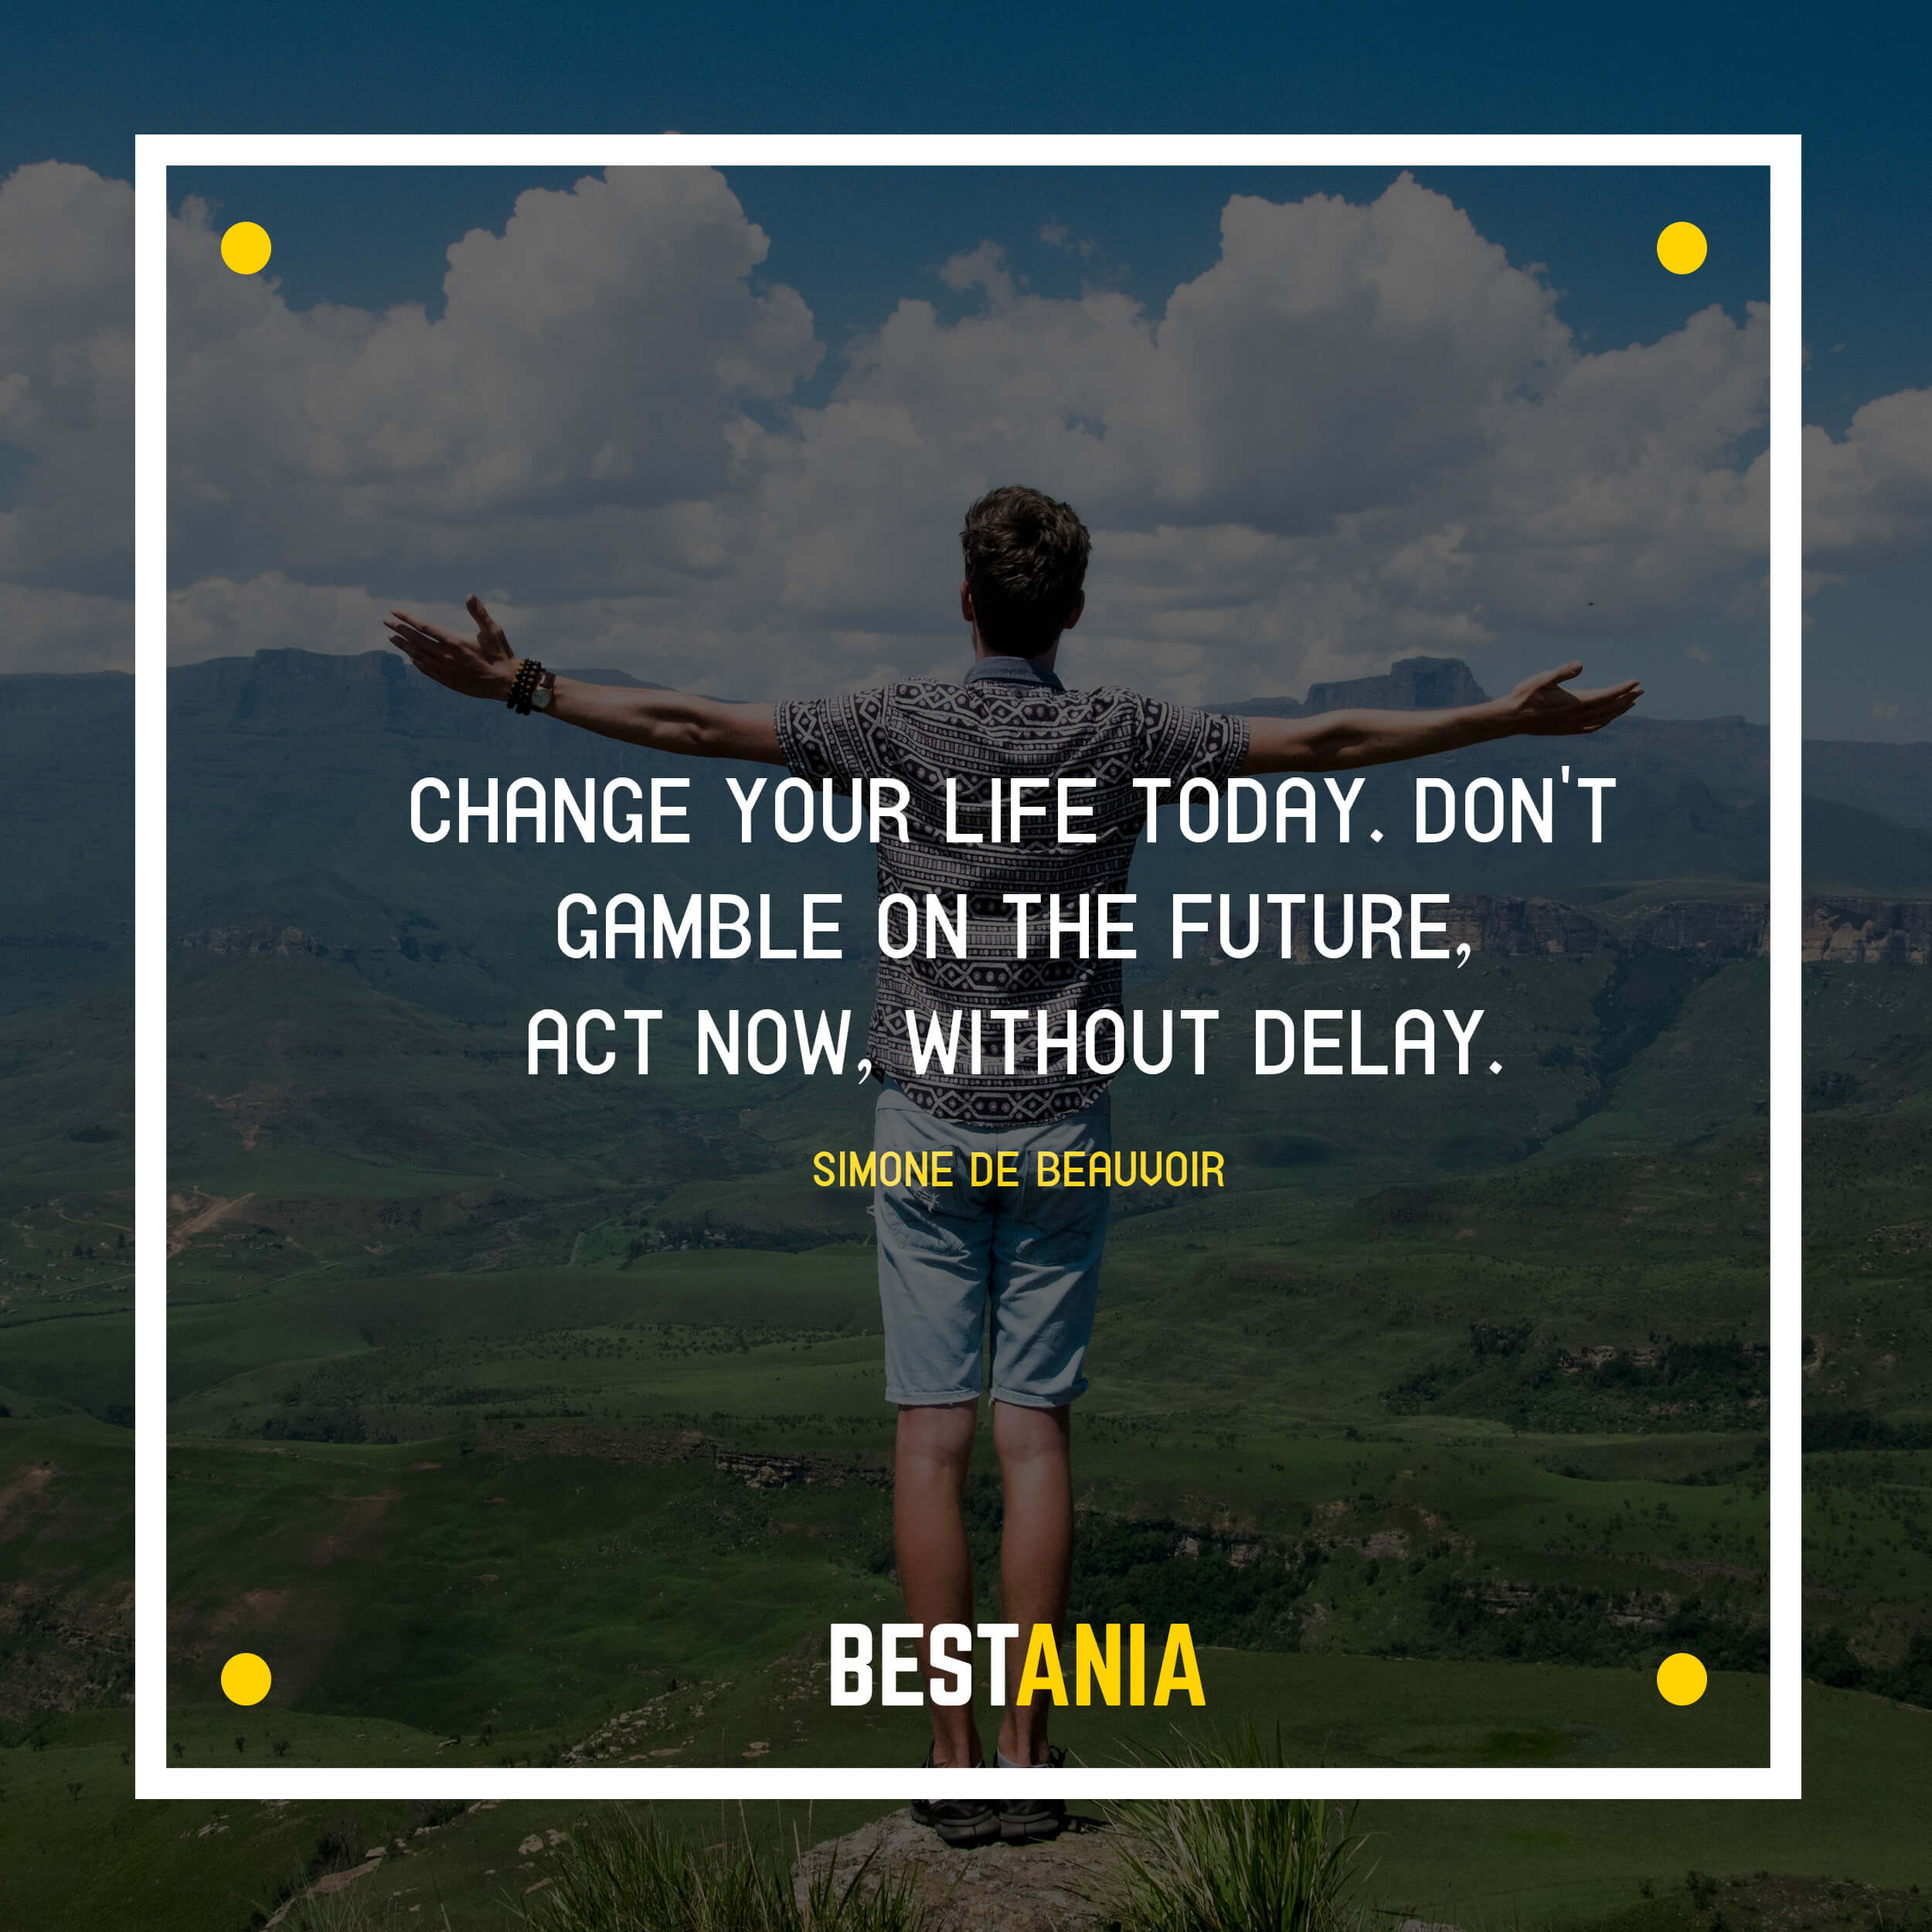 """""""CHANGE YOUR LIFE TODAY. DON'T GAMBLE ON THE FUTURE, ACT NOW, WITHOUT DELAY.""""  SIMONE DE BEAUVOIR"""